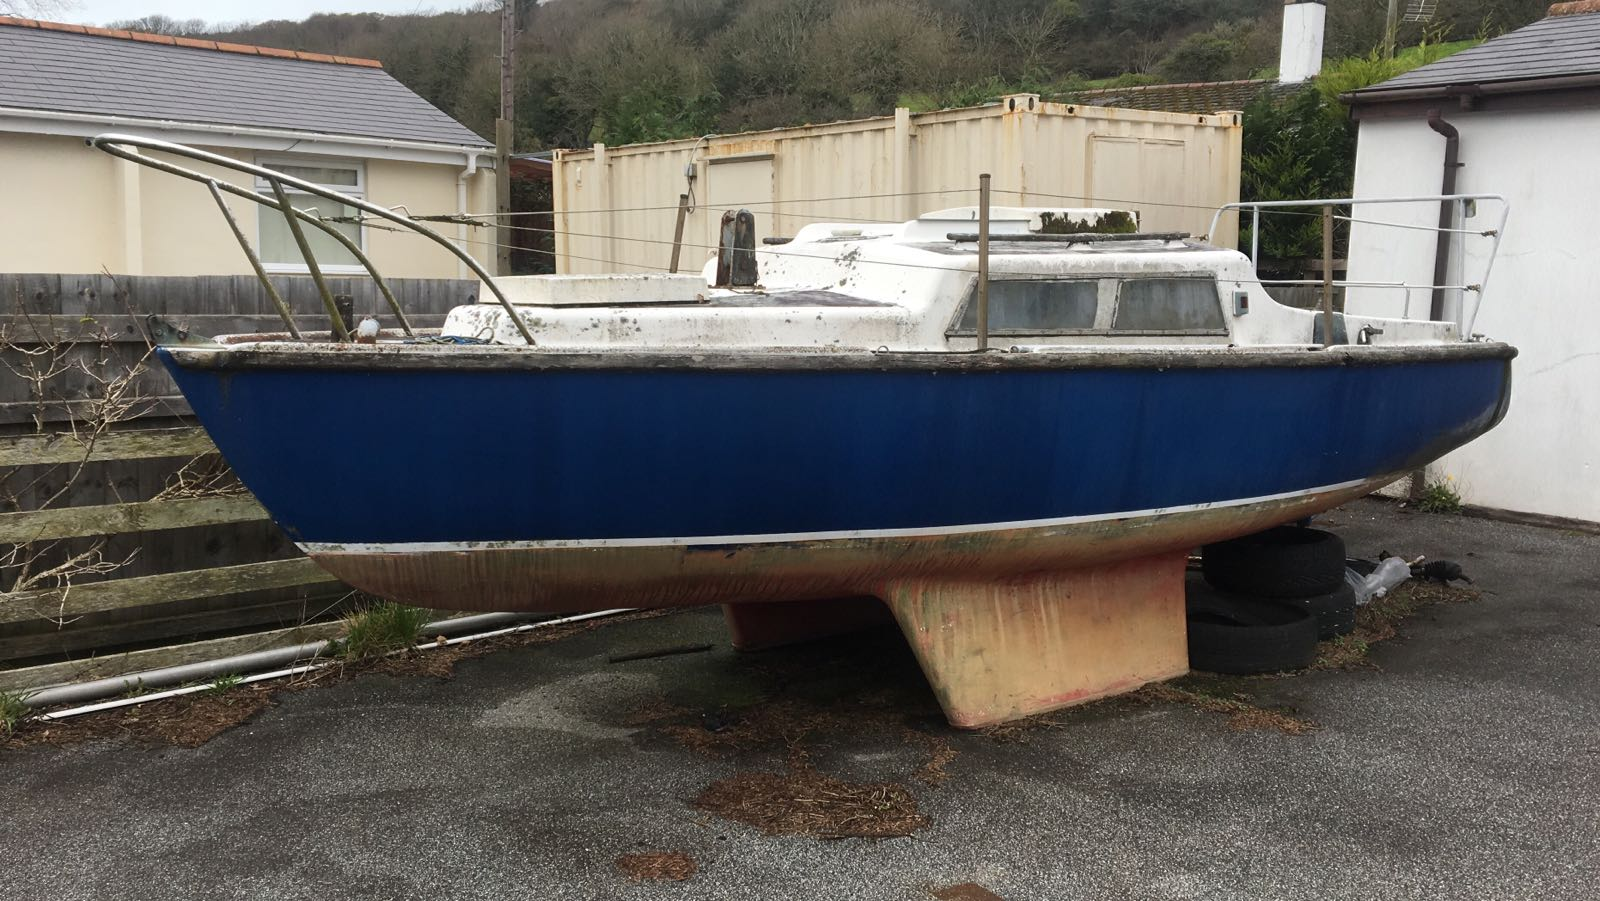 19ft Alacrity Sailing Boat - £750 - Ideal for first boat